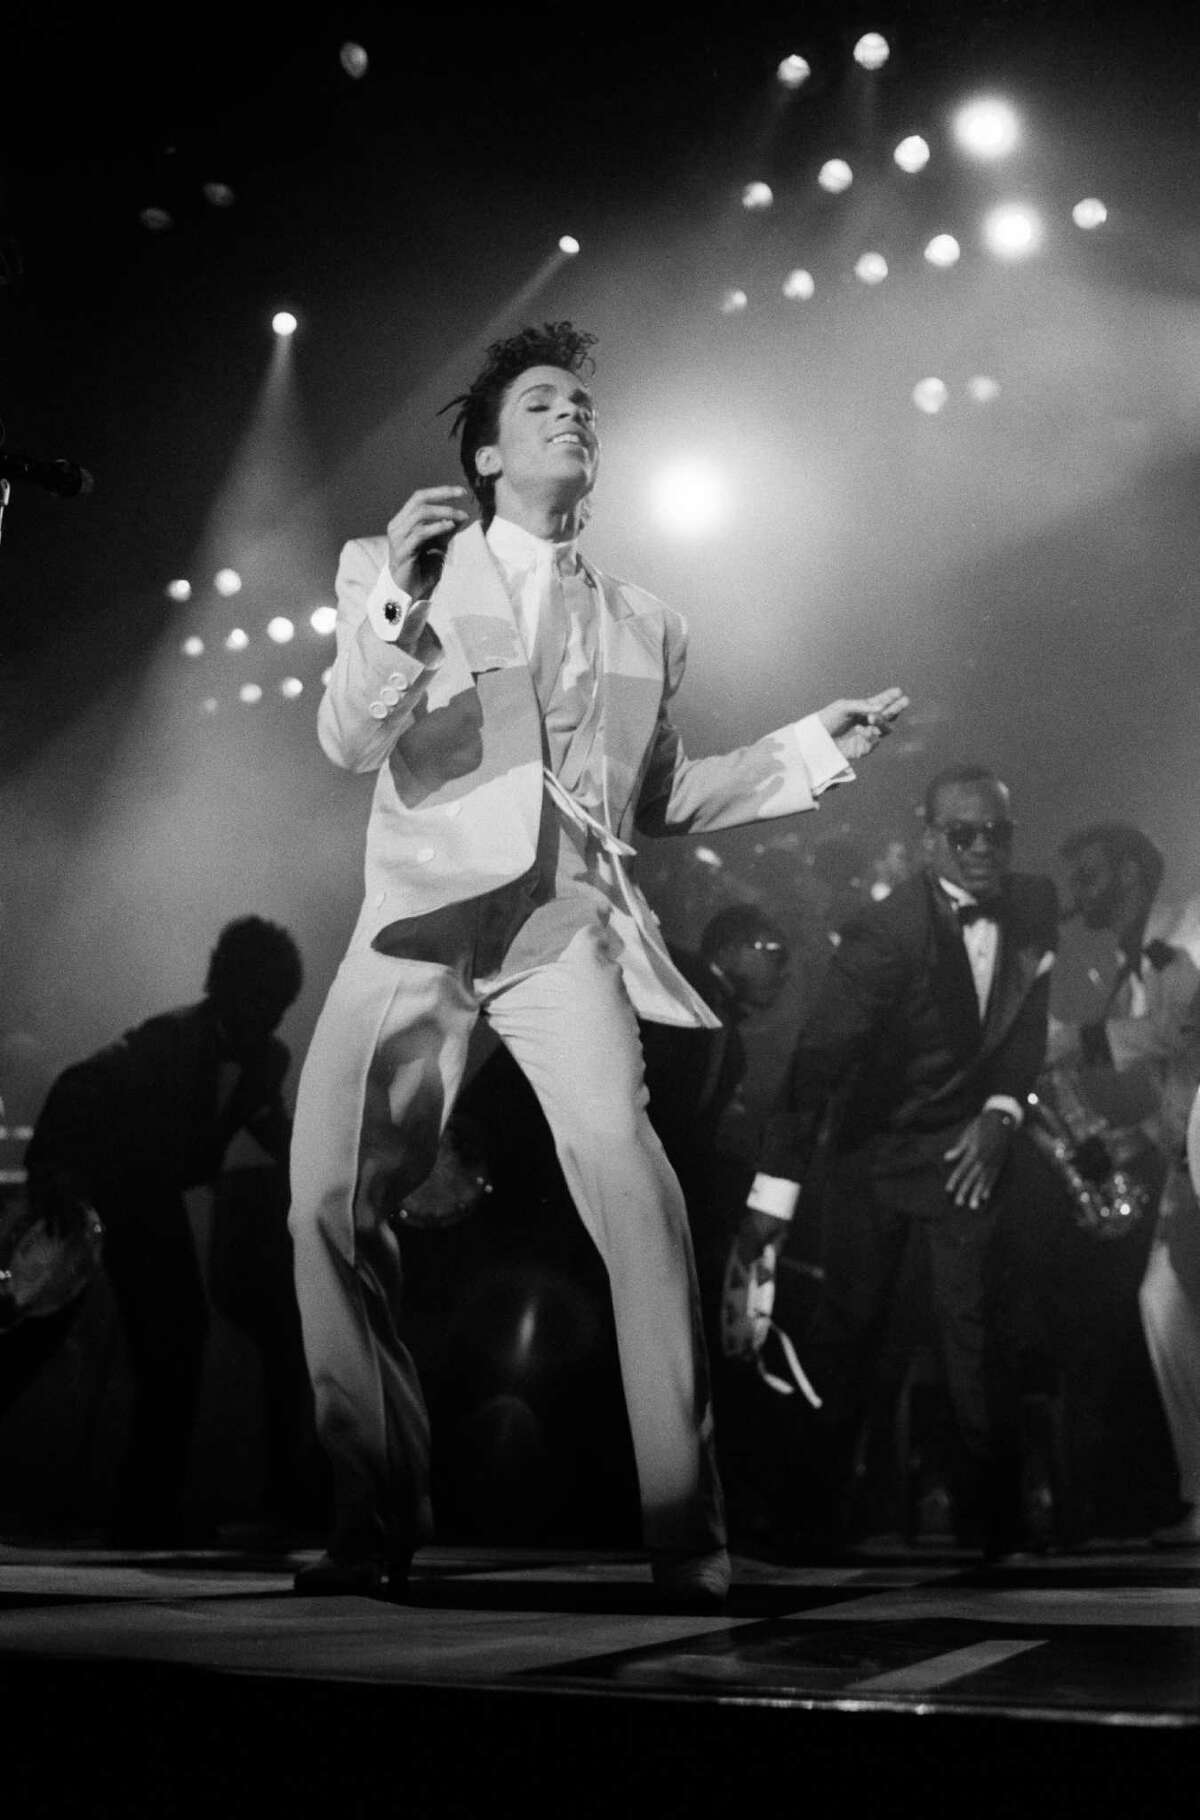 American singer and musician Prince performing in London, 1986.